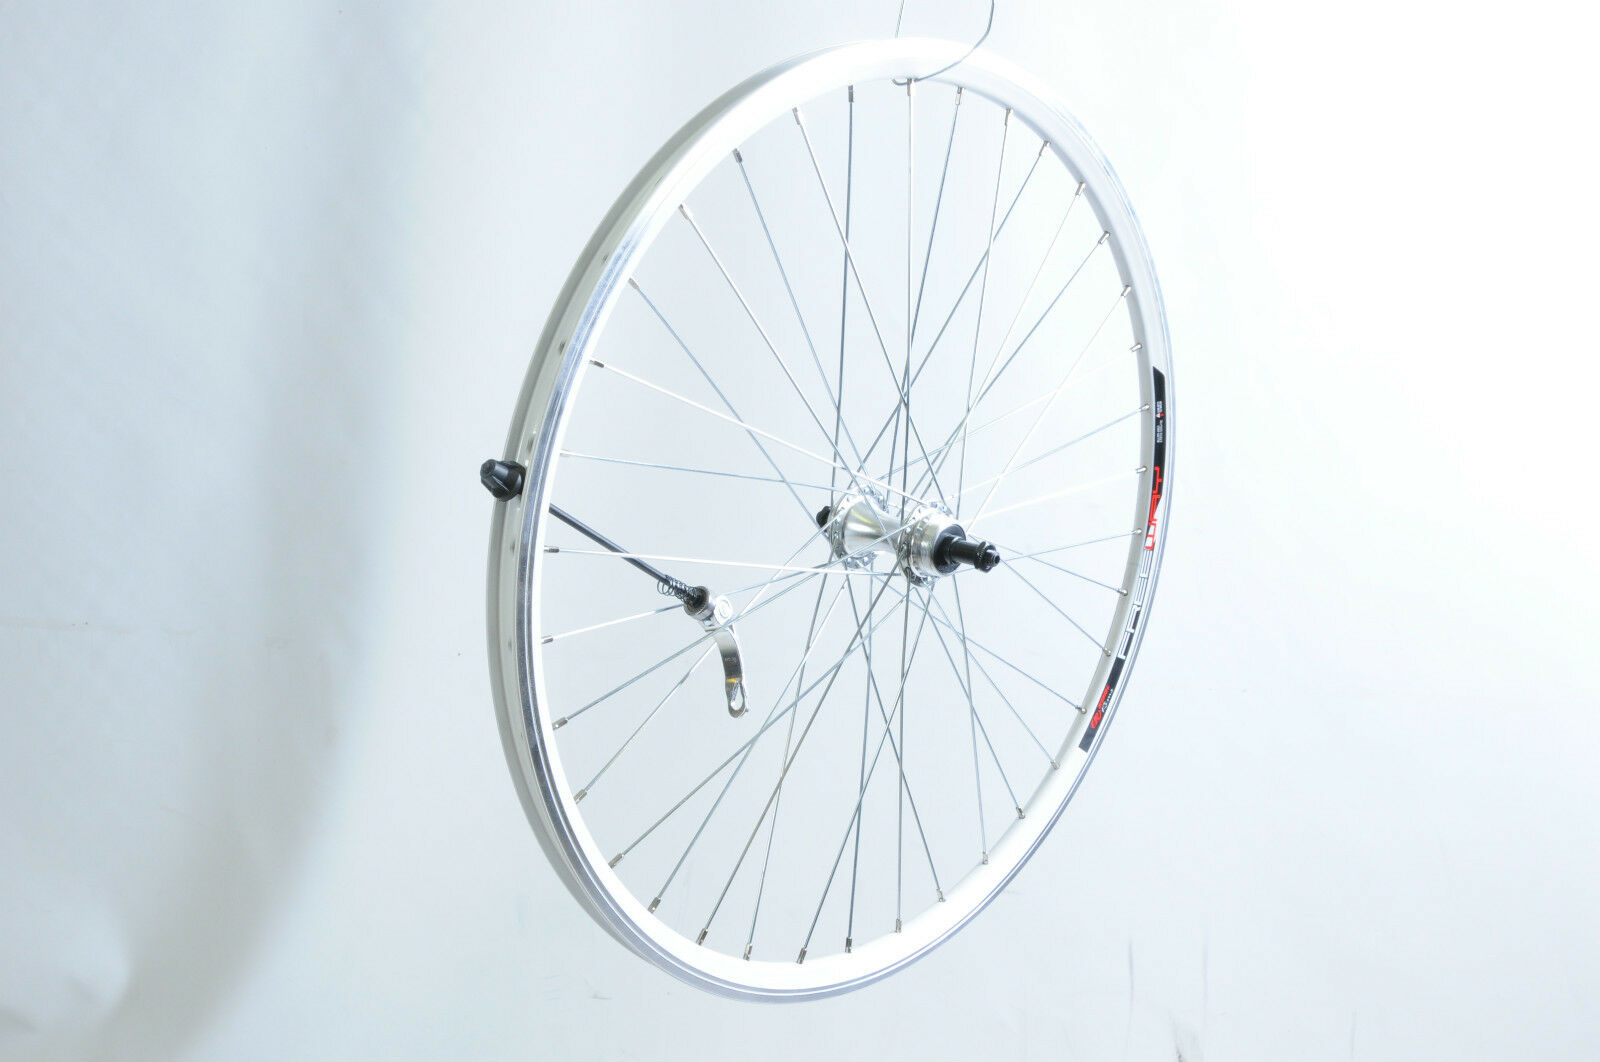 REAR Q R WHEEL MTB BIKE 26 x 1.75 559 DOUBLE WALL RIM ALLOY 5,6, 7 SPD 130mm OLD